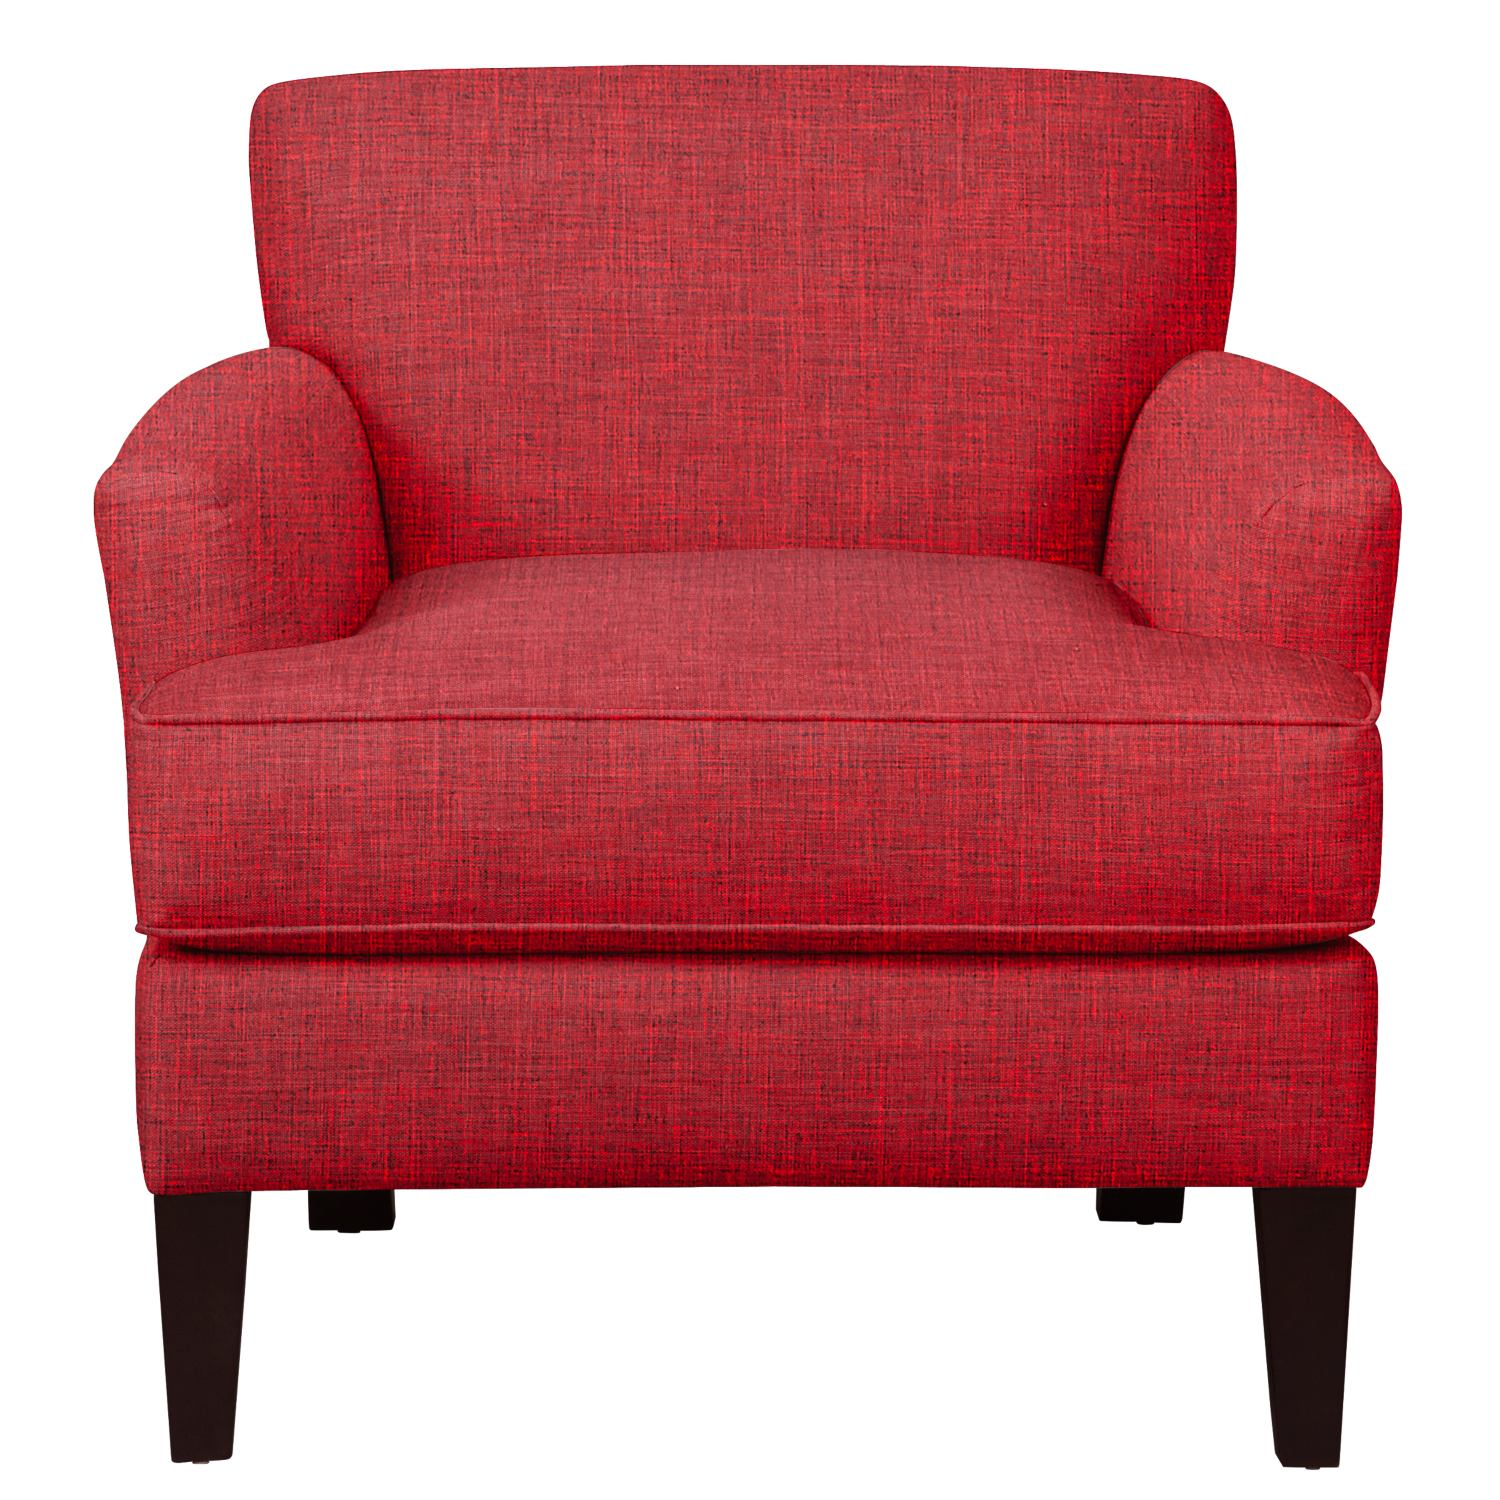 Living Room Furniture - Marcus Chair w/ Milford II Red Fabric